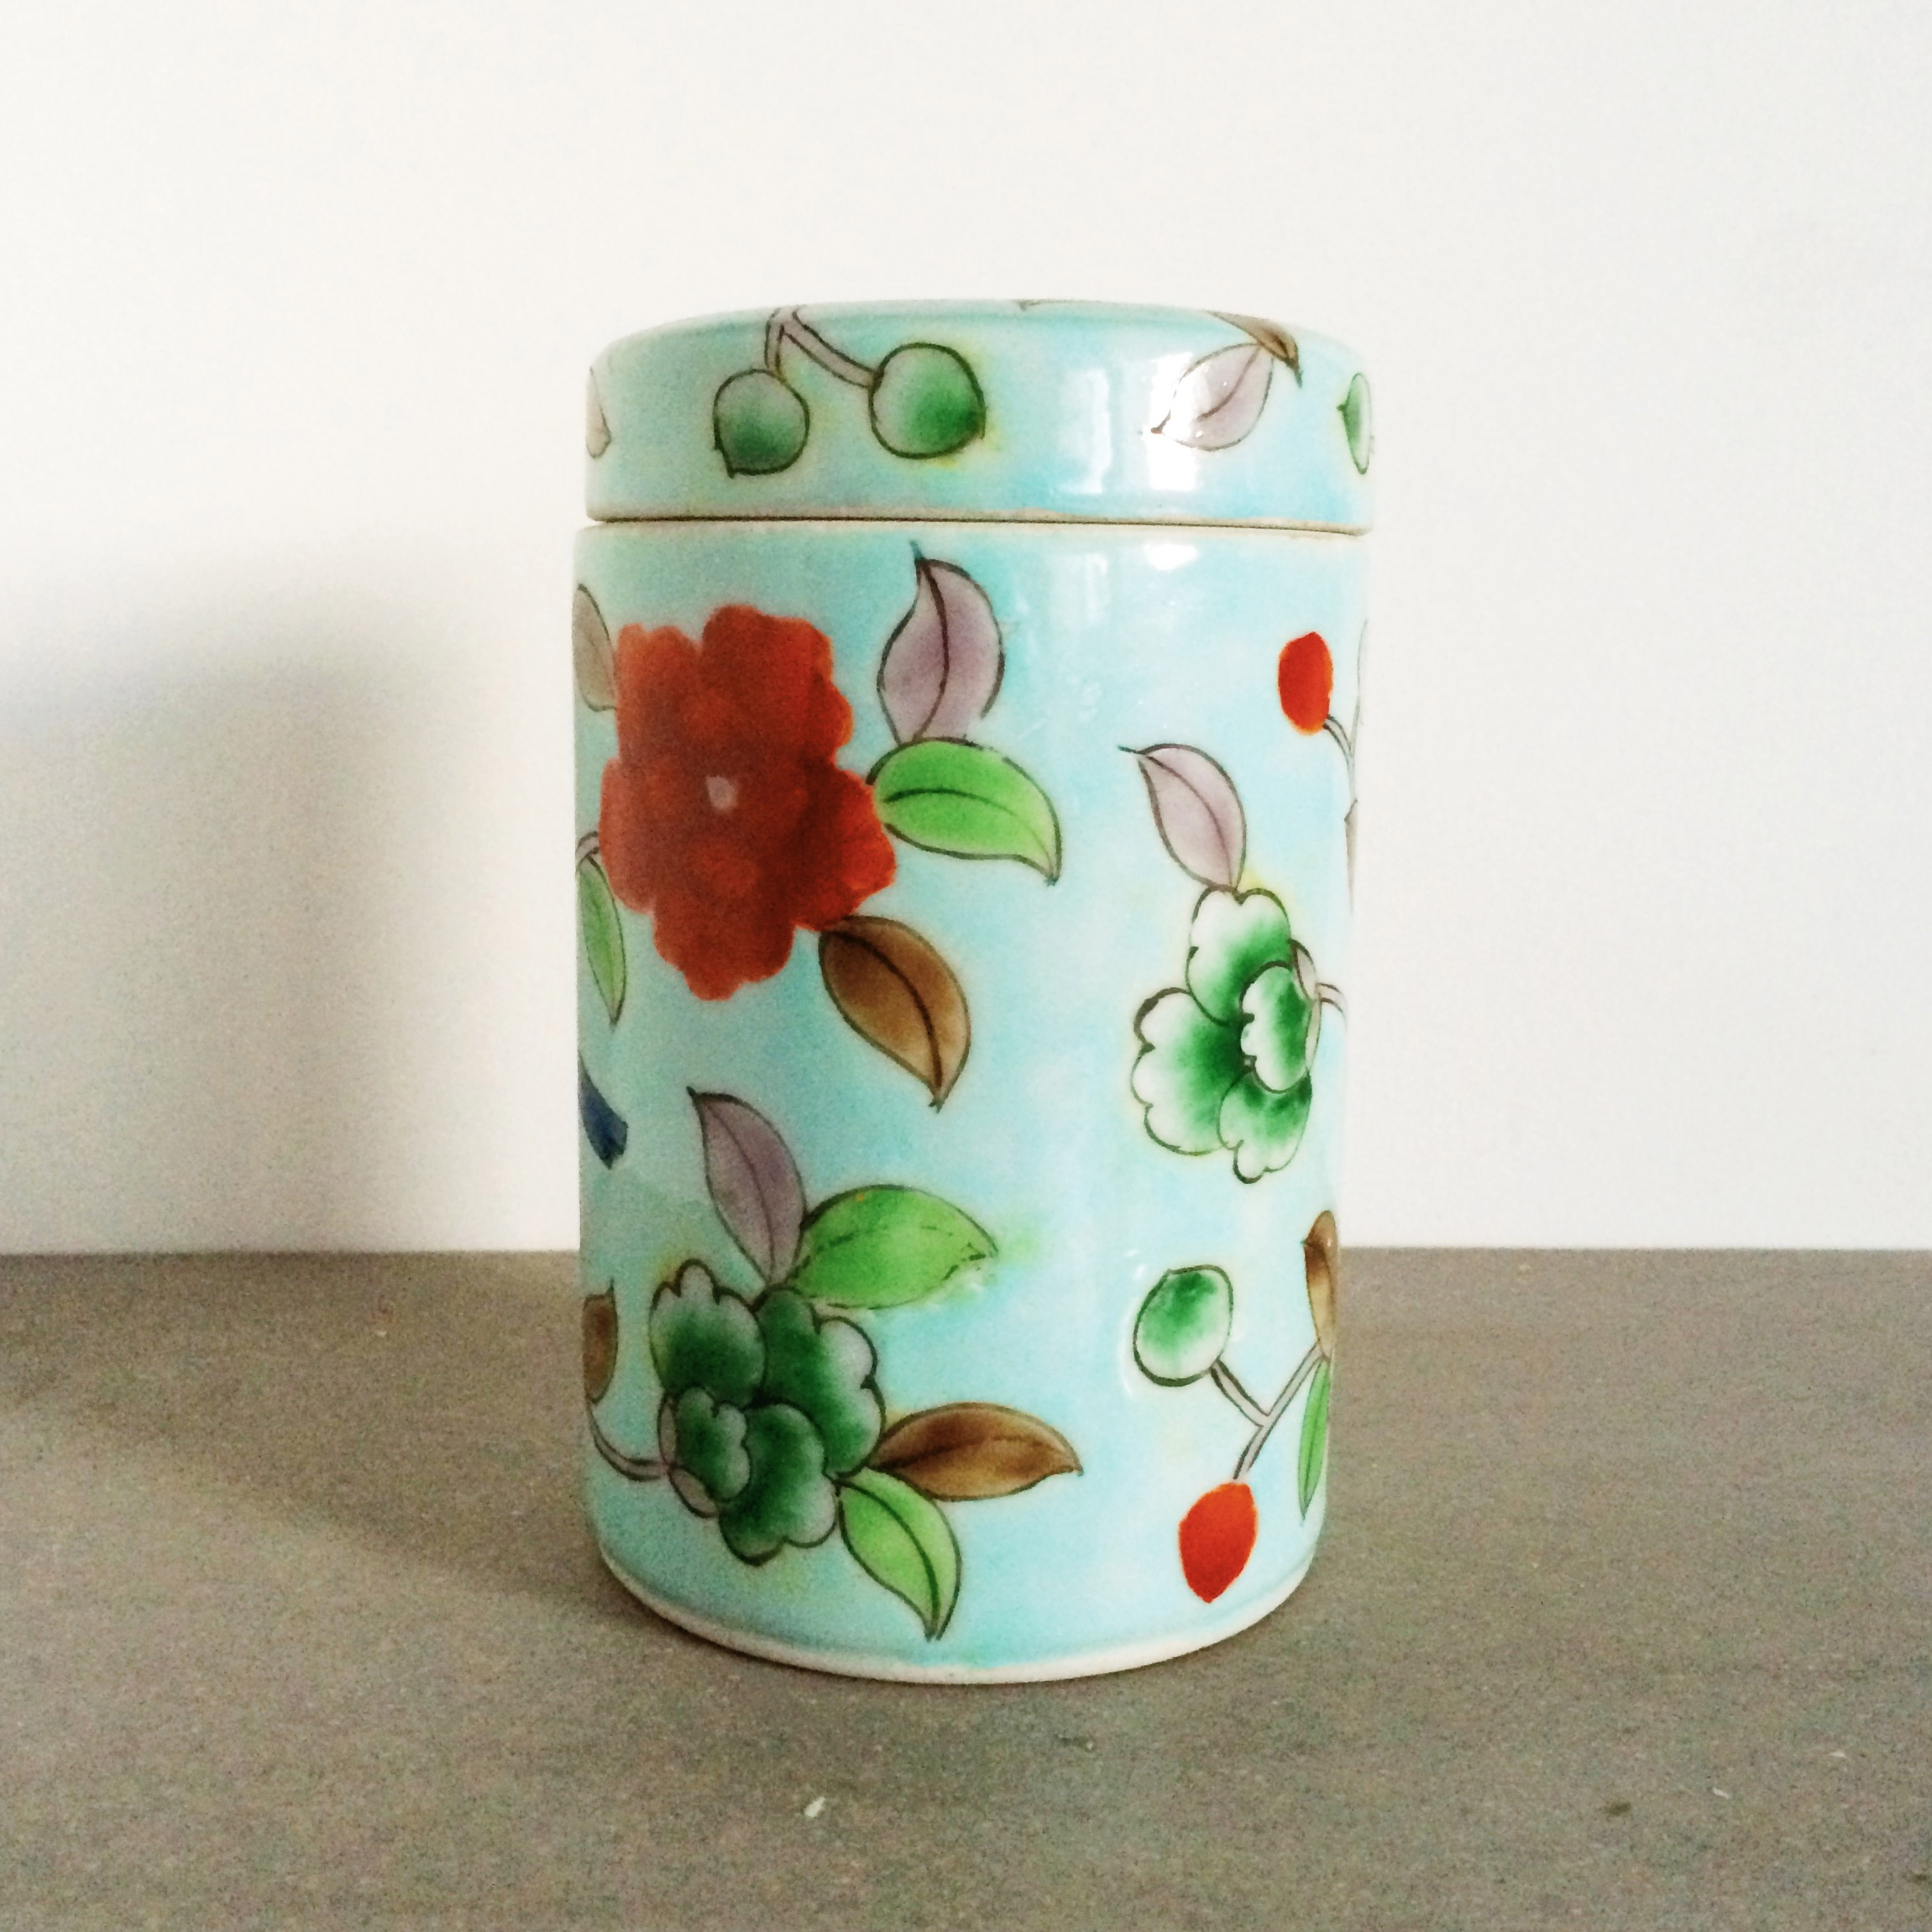 a petite ceramic container from the basement of  laitai flower market  in beijing, currently housing q-tips and cotton balls in my bathroom.